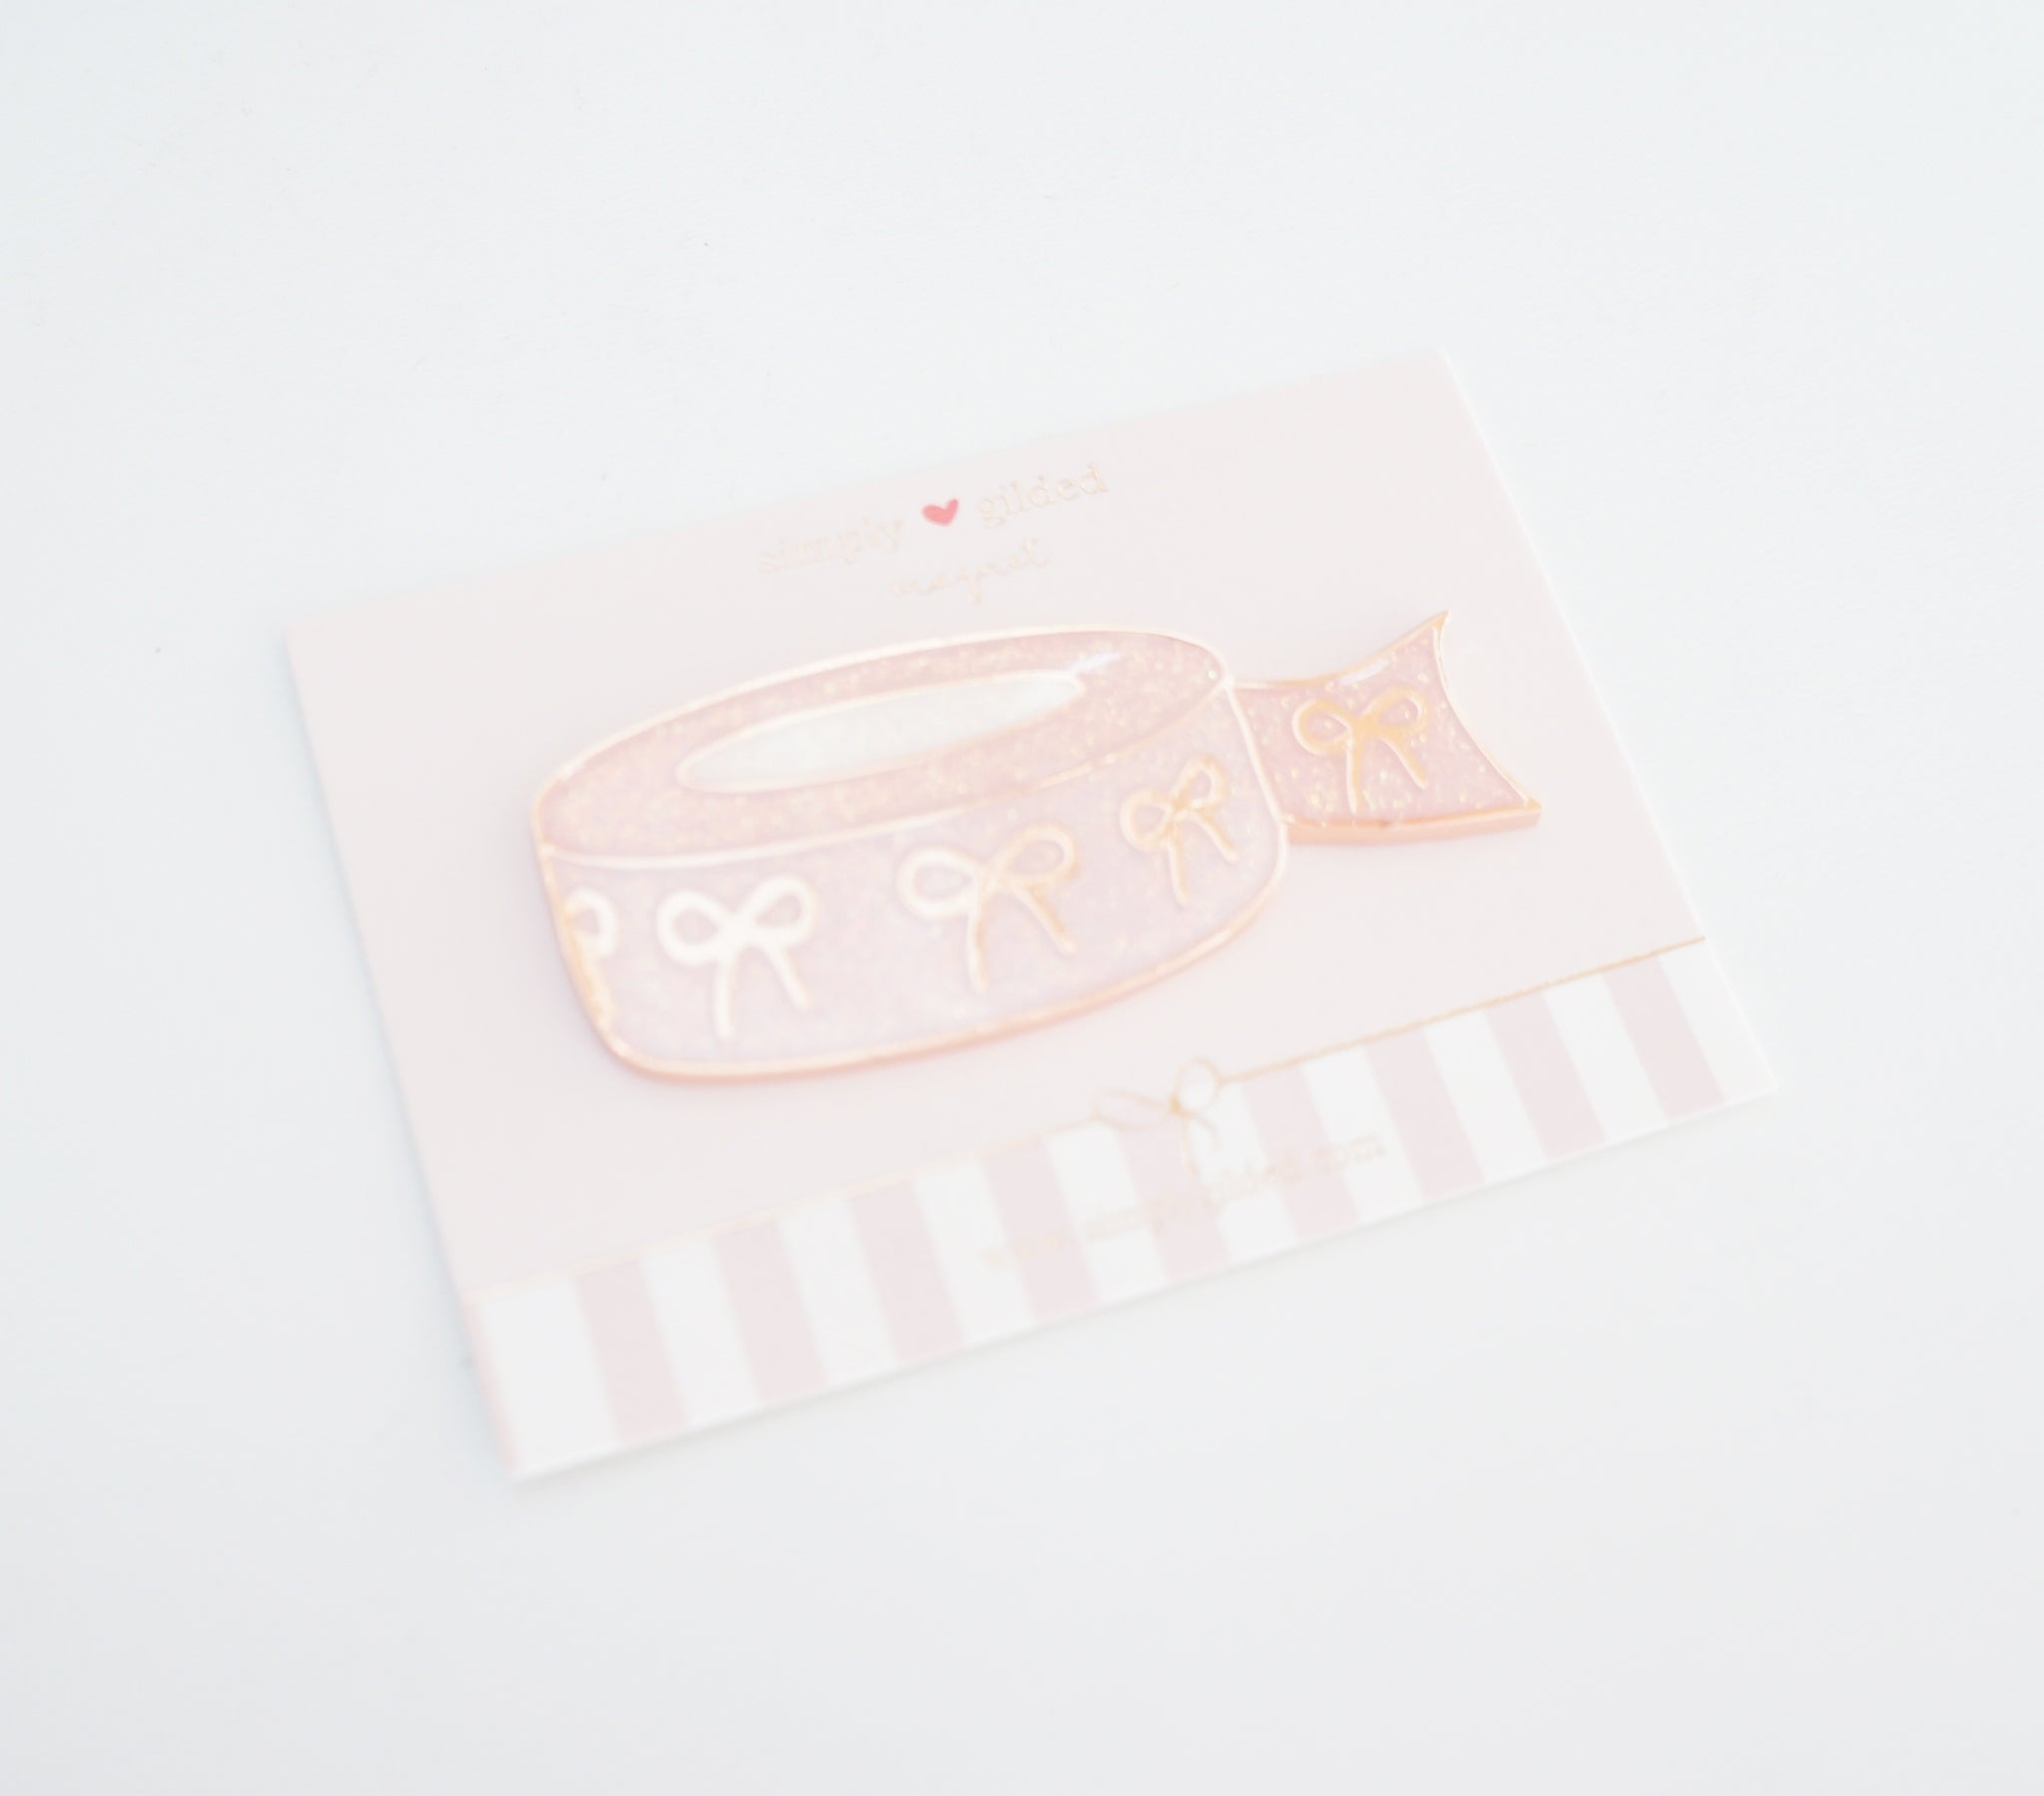 Day 4 - MAGNET - PINK glitter bow washi (Mystery Box)